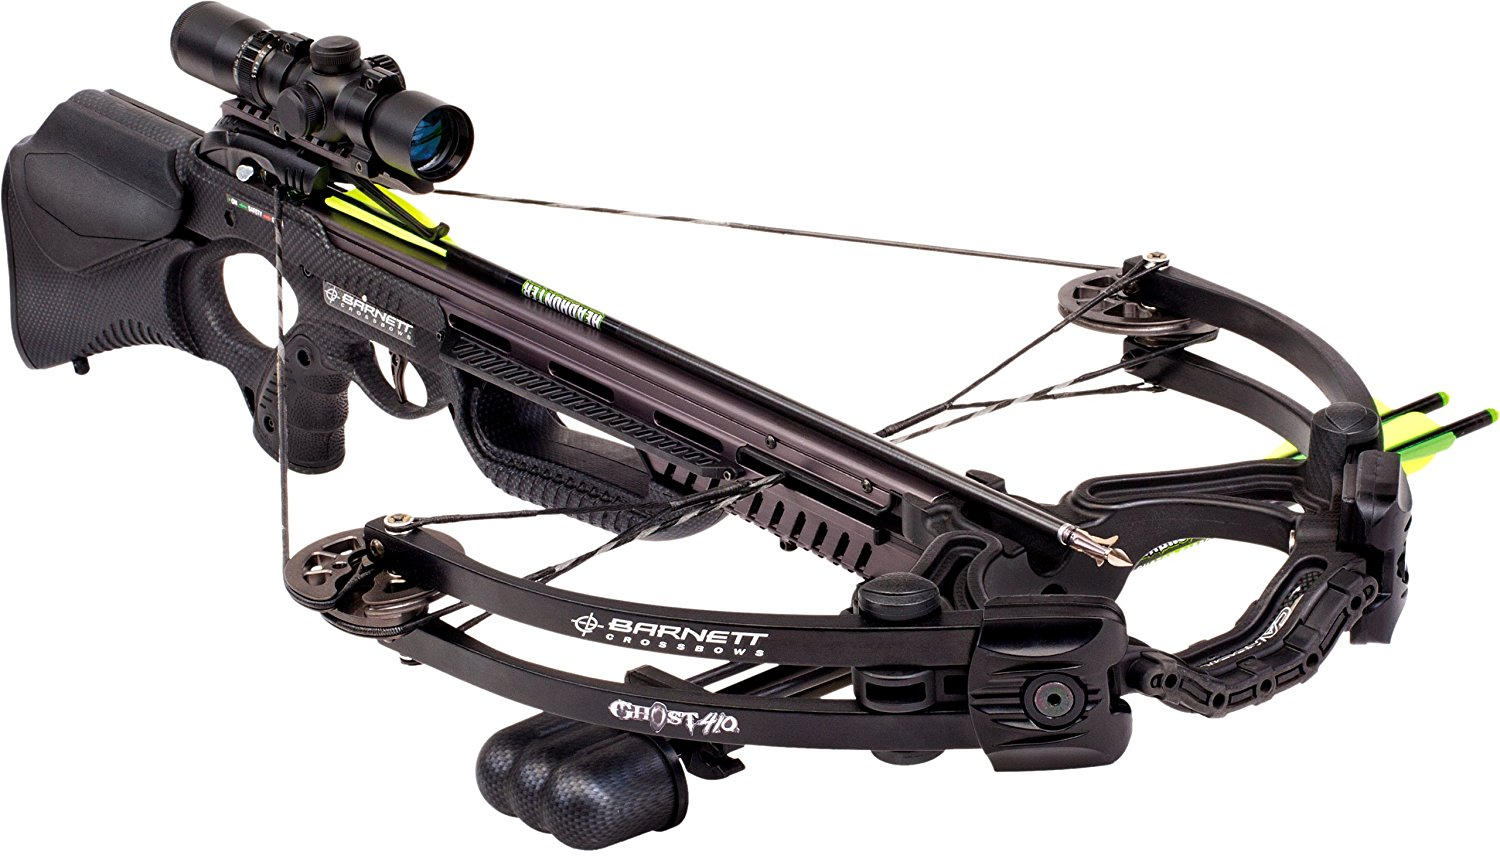 Barnett Ghost 410 Crossbow Package